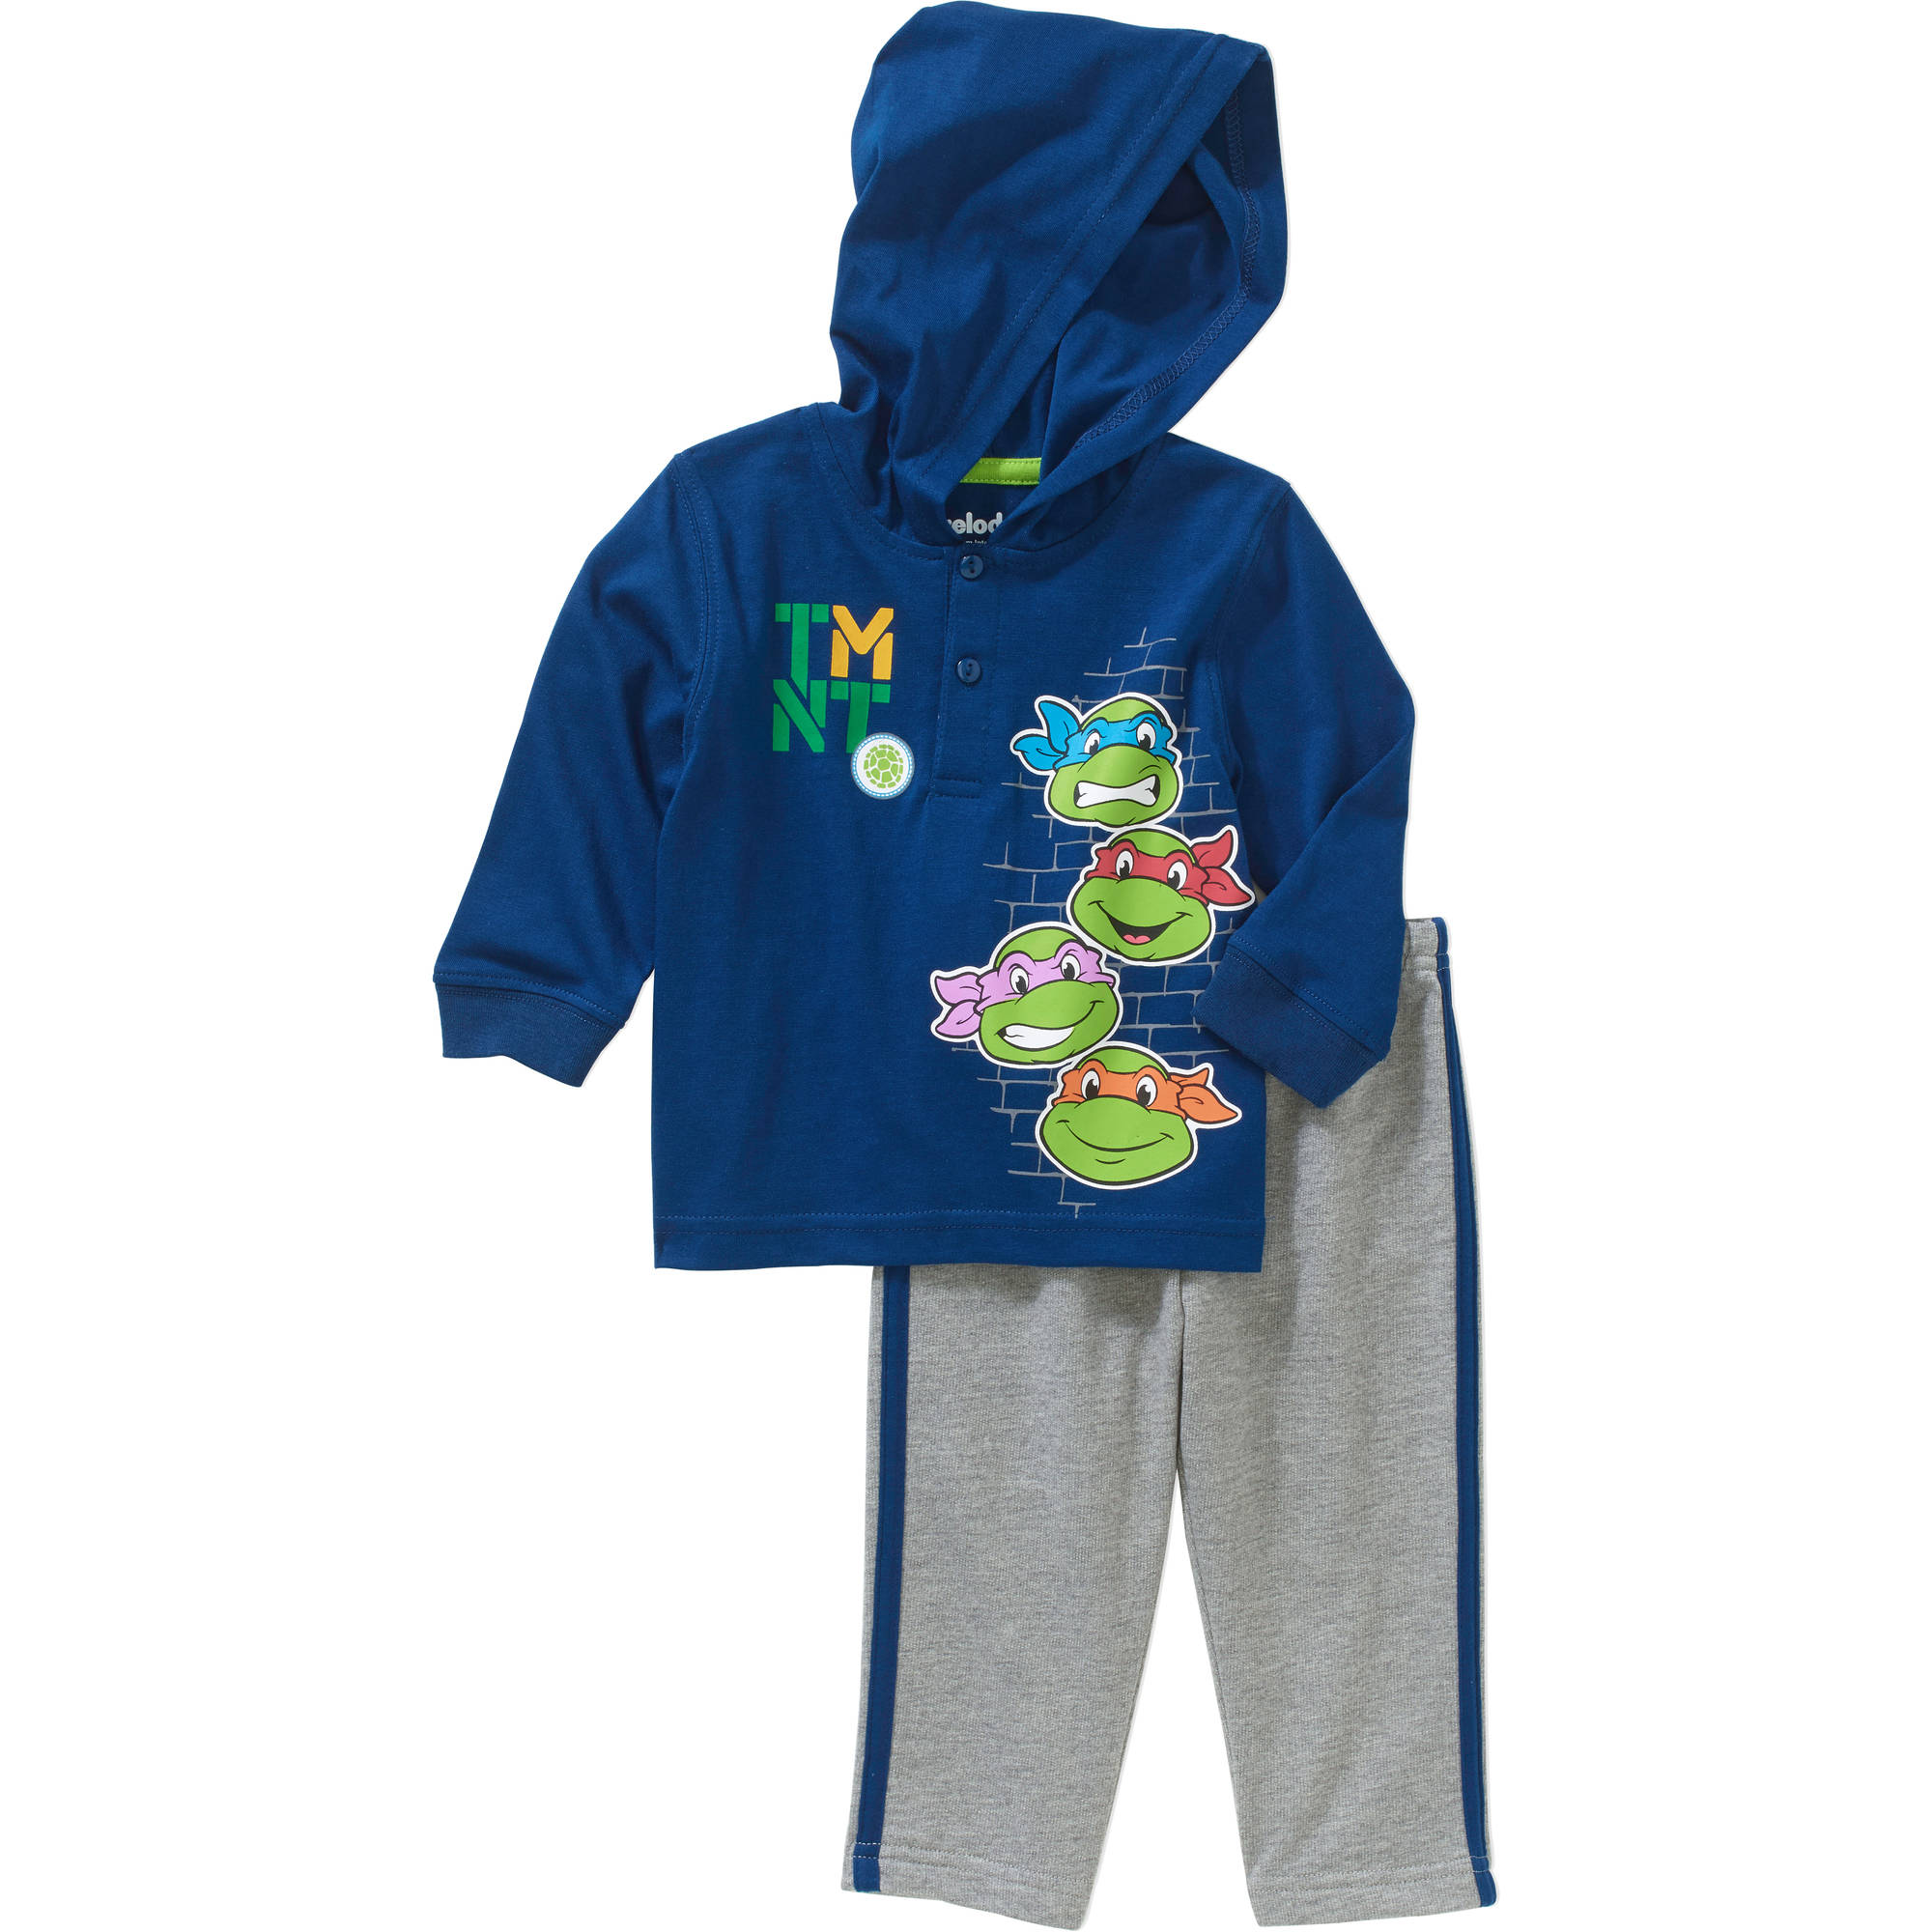 Teenage Mutant Ninja Turtles Newborn Baby Boys' French Terry Hoodie Top and Jersey Pants Outfit Set